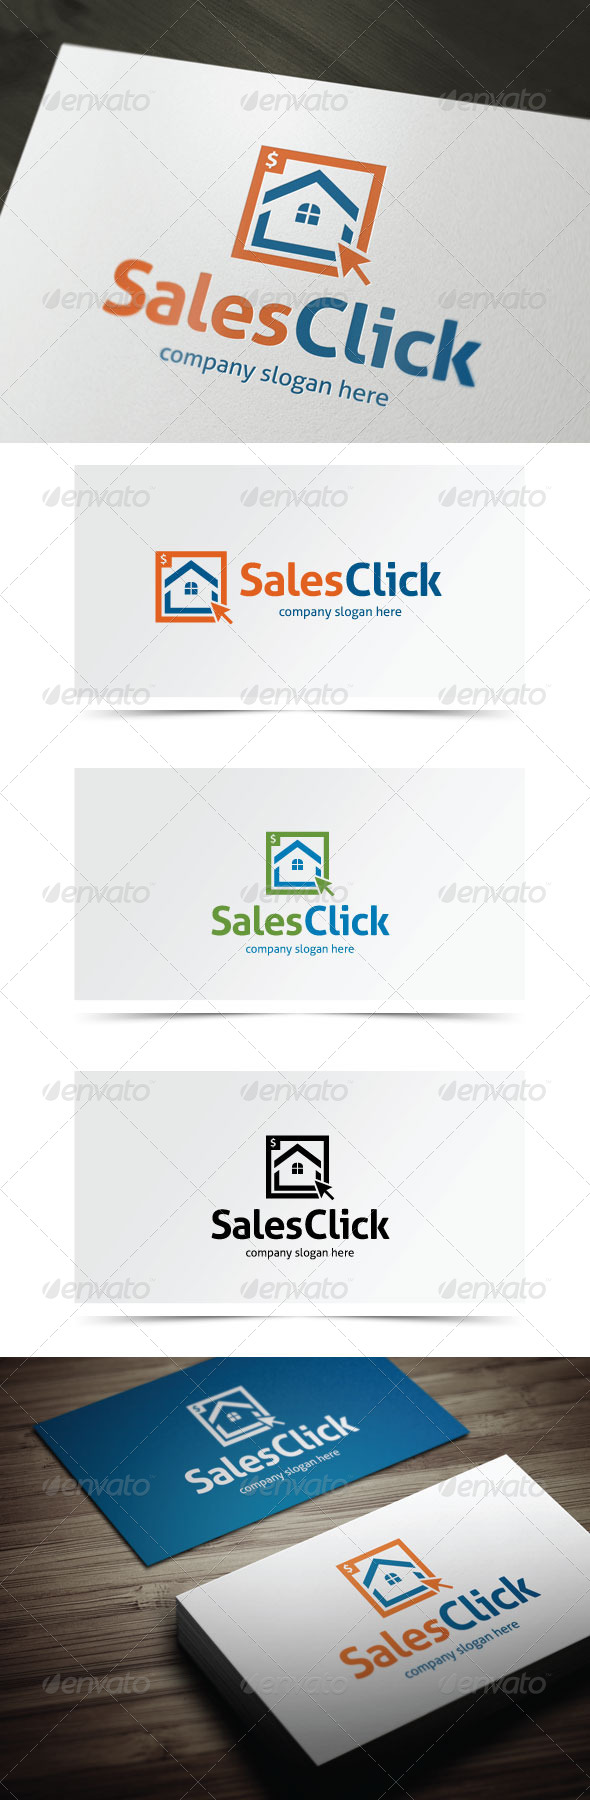 GraphicRiver Sales Click 5776970